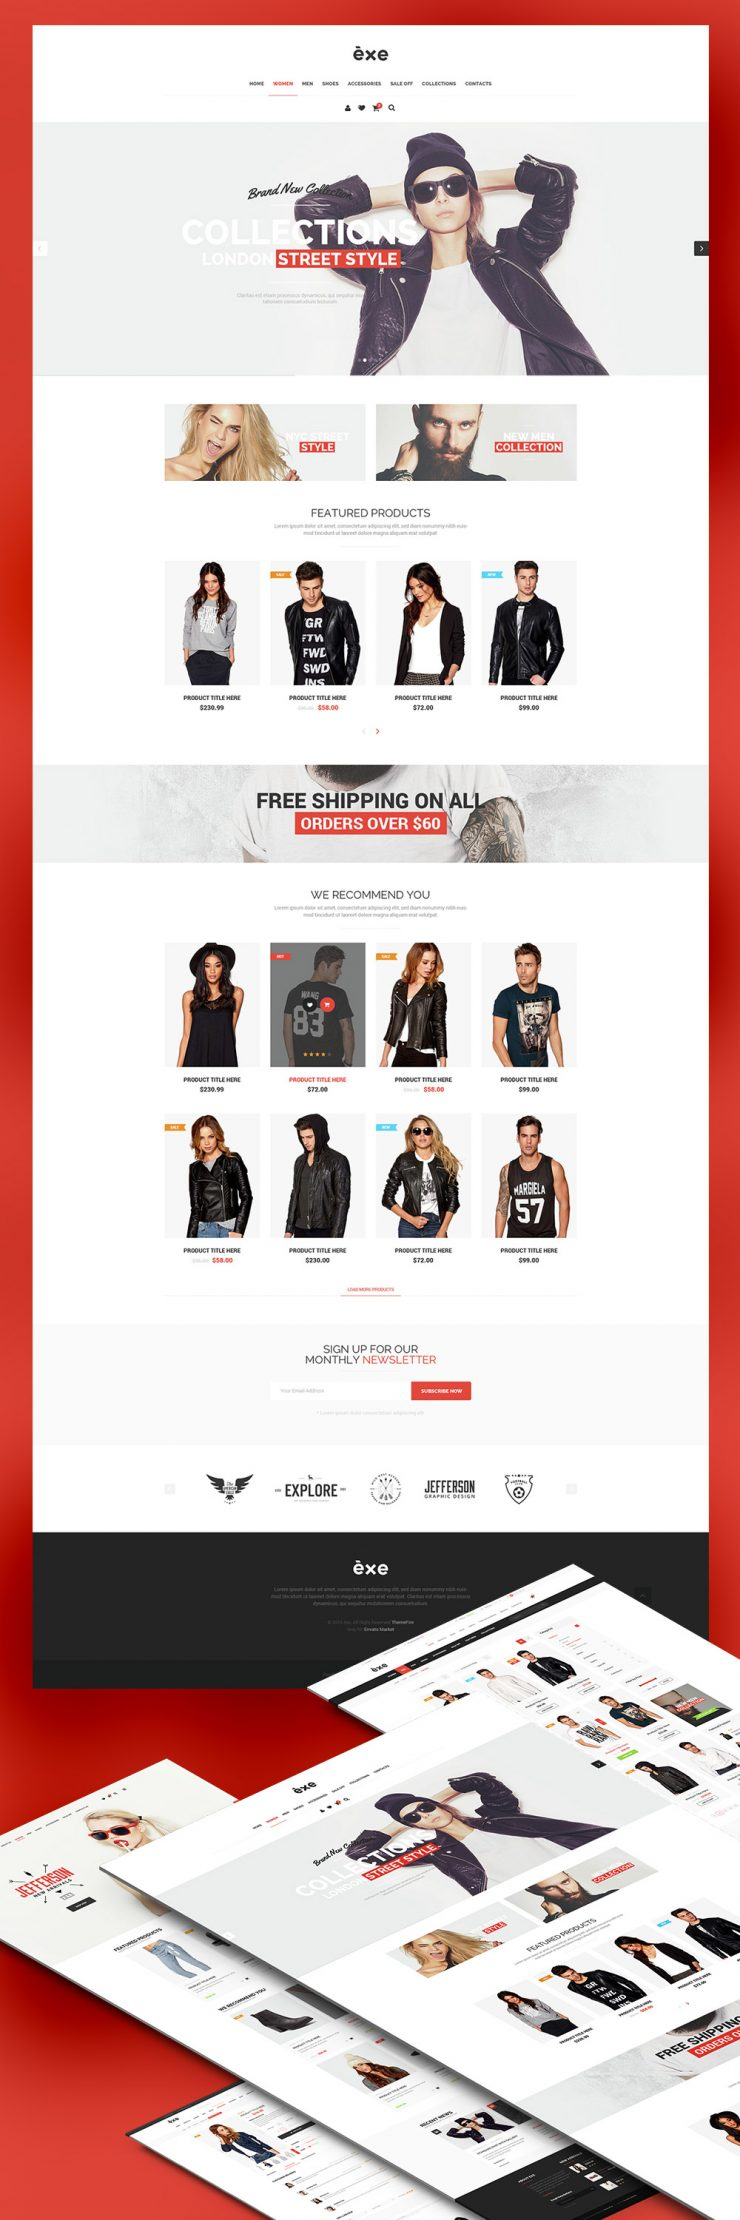 Multipurpose eCommerce WordPress Theme Free PSD Templates www, WP, wordpress ecommerce, Wordpress, White, Website Template, Website Layout, Website, webpage, Web Template, web site, Web Resources, web page, Web Layout, Web Interface, Web Elements, Web Design, Web, User Interface, universal, unique, UI, Theme, Template, Stylish, store template, Store, Simple, Showcase, Shopping Website, Shopping, shopify, shop template, Shop, selling, Sale, retail, Resources, Quality, Psd Templates, PSD template, psd store, PSD Sources, PSD Set, psd resources, psd kit, PSD images, psd free download, psd free, PSD file, psd download, PSD, Professional, products, Premium, Portfolio, Photoshop, pack, os commerce, original, opencart, online store, online shopping, online shop, onepage, new, Multipurpose, Modern, Listing, lifestyle, Layered PSDs, Layered PSD, high quality, Graphics, fullwith, full website, Fresh, freemium, Freebies, Freebie, Free Template, Free Resources, Free PSD Template, Free PSD, free download, Free, footwear, Flat, fashion template, Fashion, Elements, ecommerce website, ecommerce template, eCommerce, ecom, e-commerce, download psd, download free psd, Download, Discount, detailed, Design, Dark, Creative, Corporate, clothing, cloth, Clean, catalogue, Cart, Buy, Business, Brand, Adobe Photoshop,